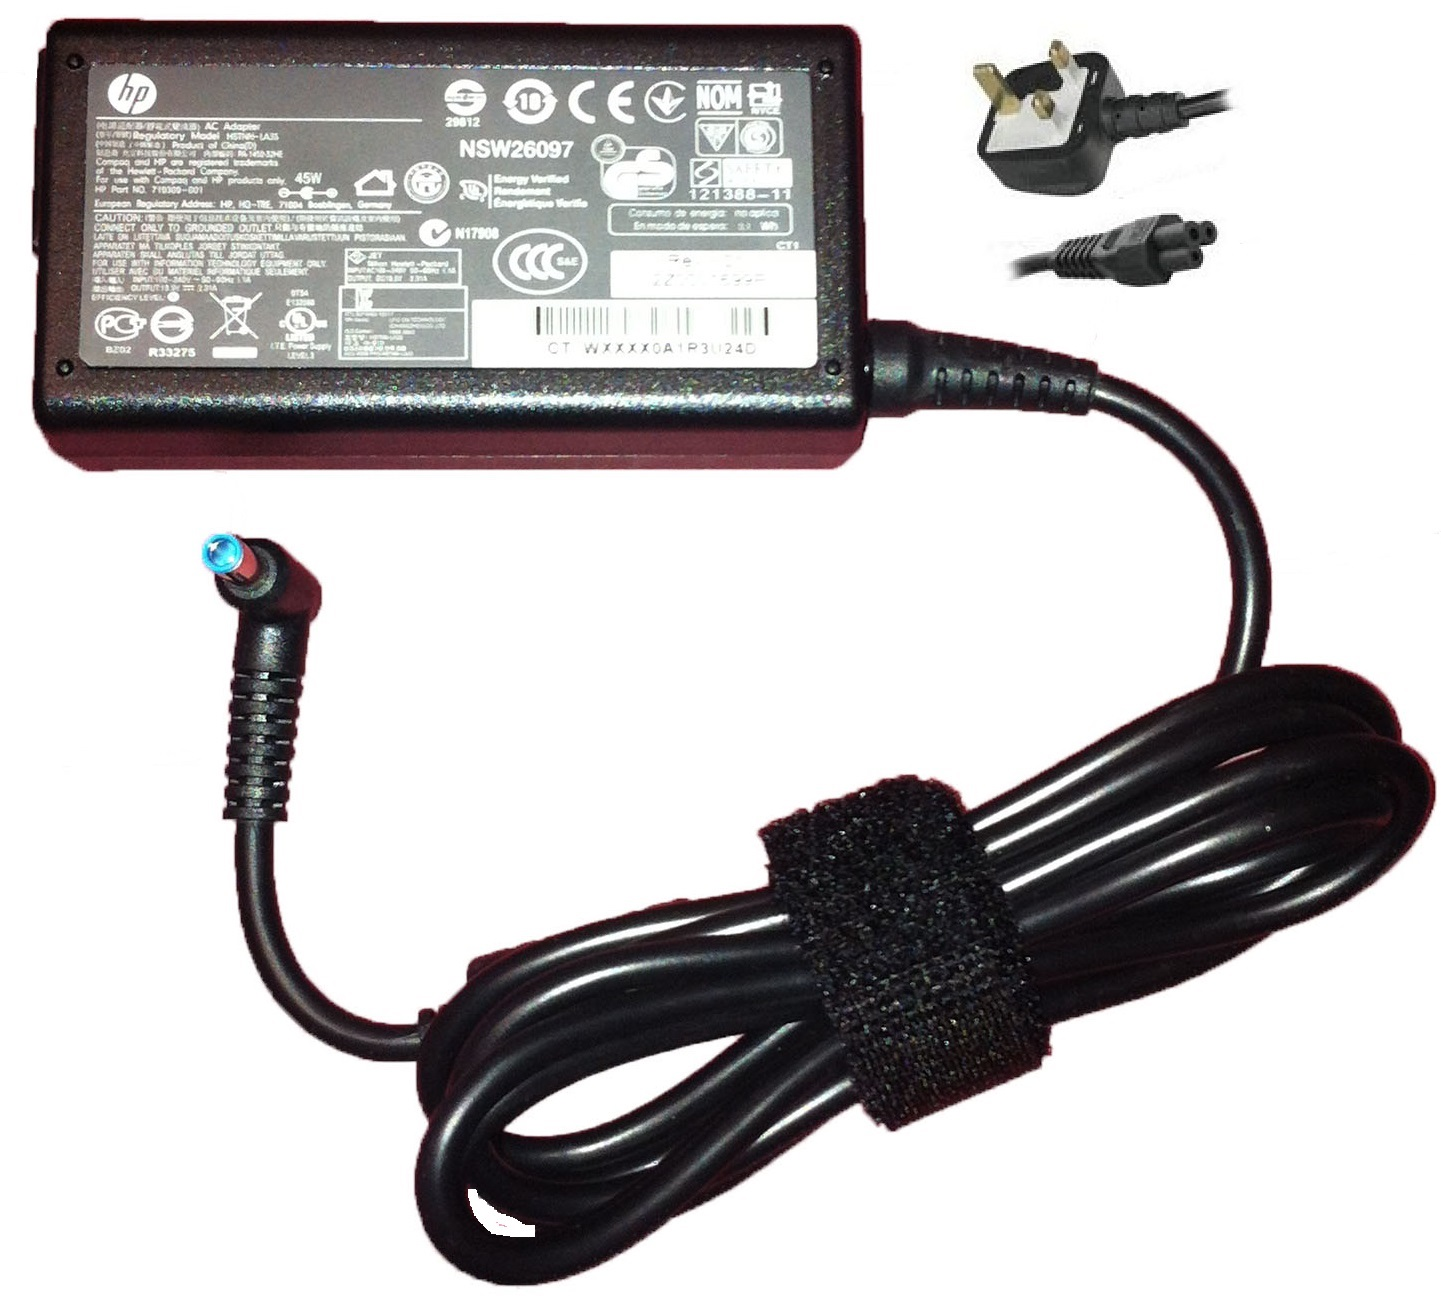 15-n276sa laptop charger / Hp Pavilion 15-n276sa ac adapter / Hp ...